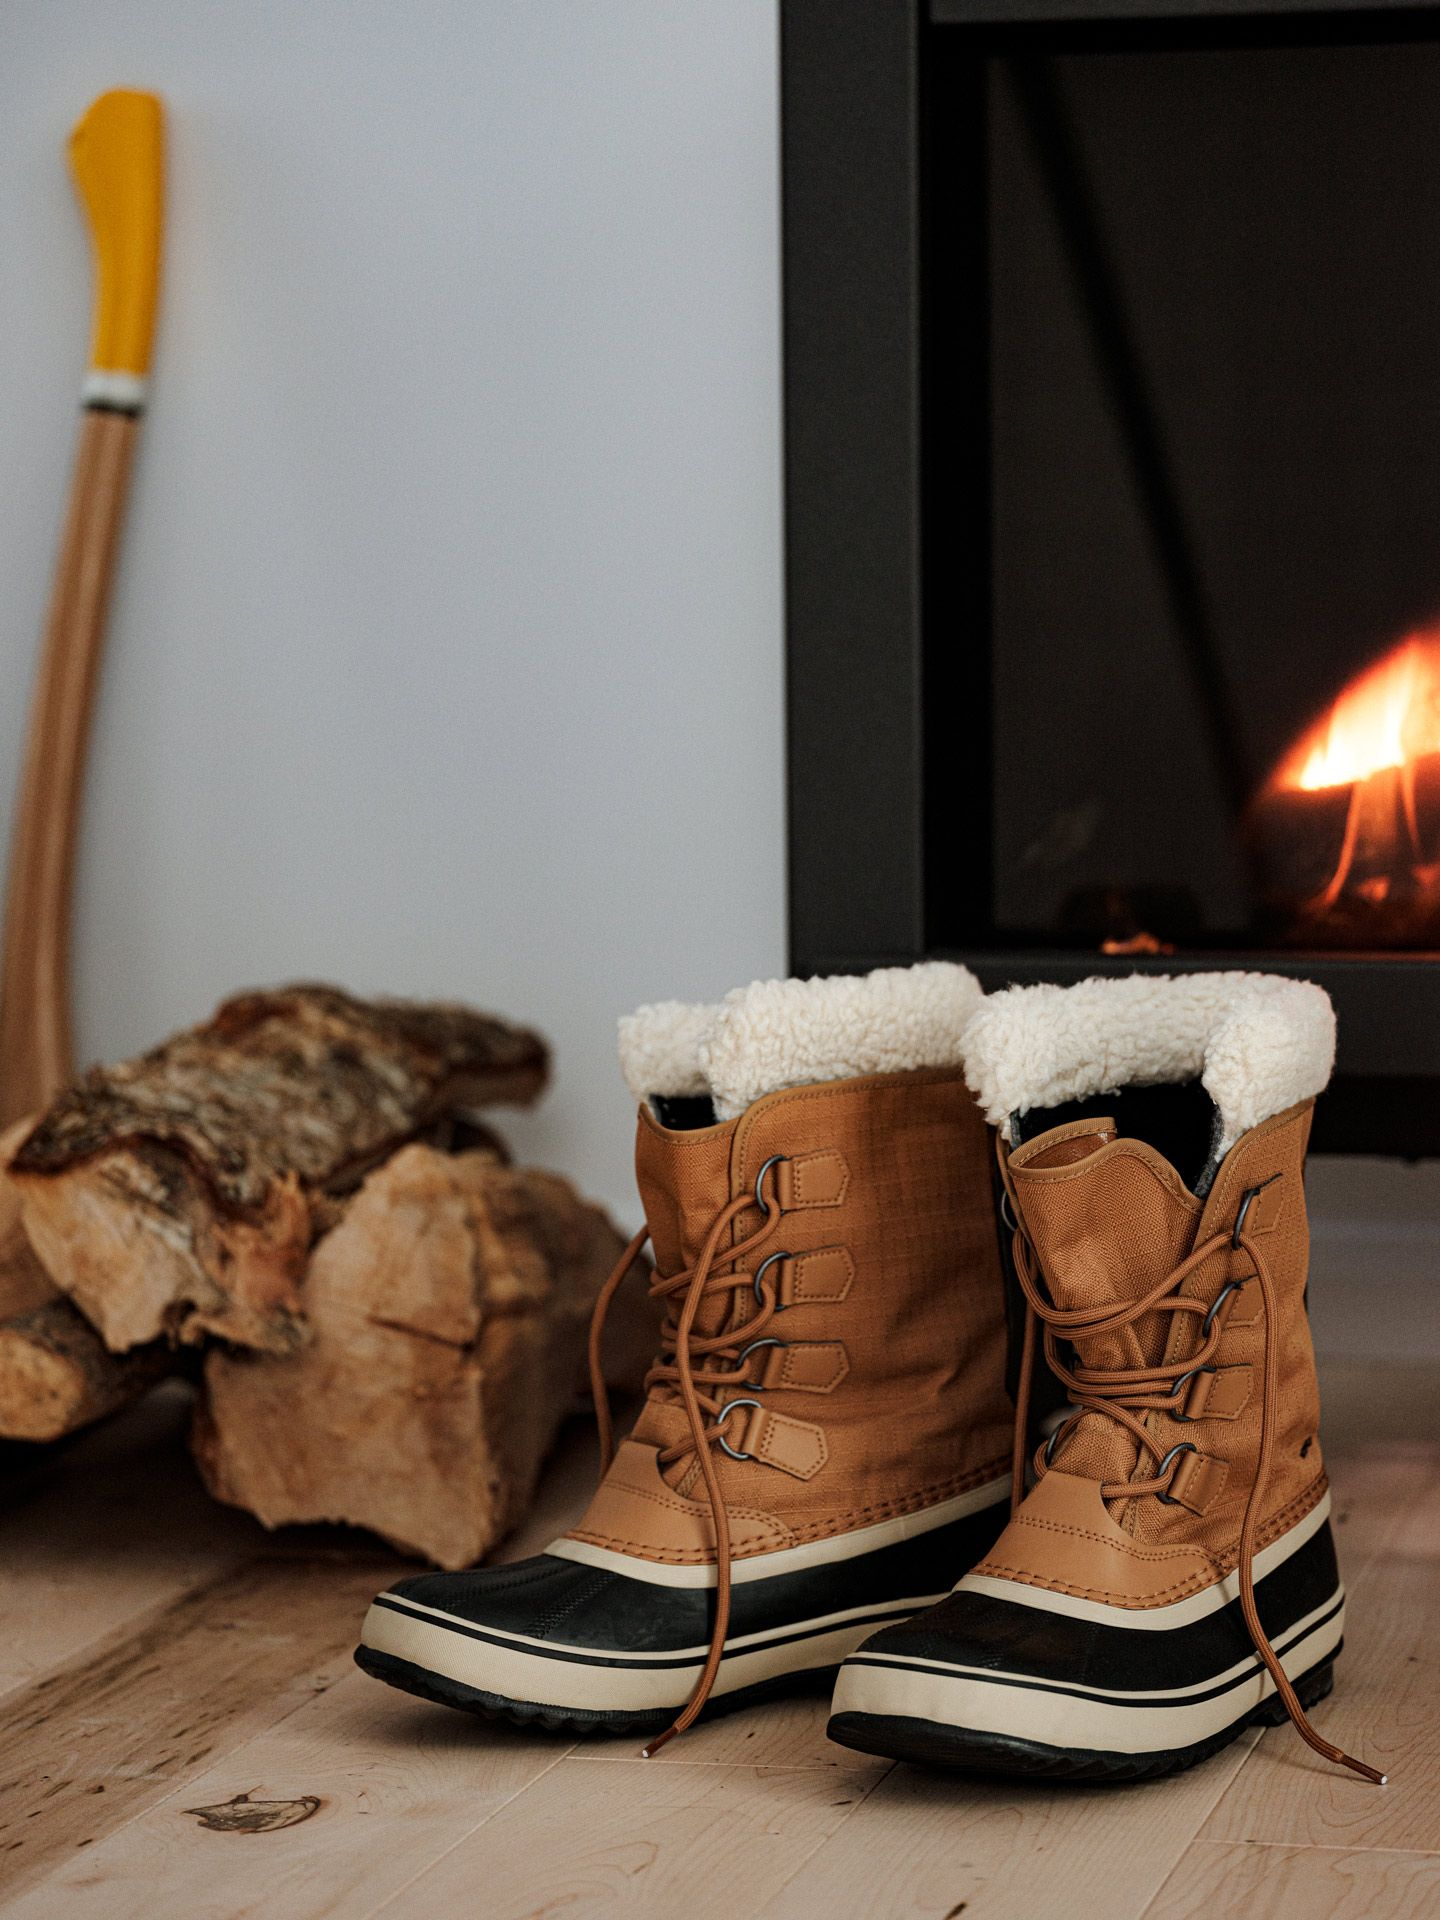 Sail sports gear photographed by Alexi Hobbs of camel-colored boots in front of fireplace